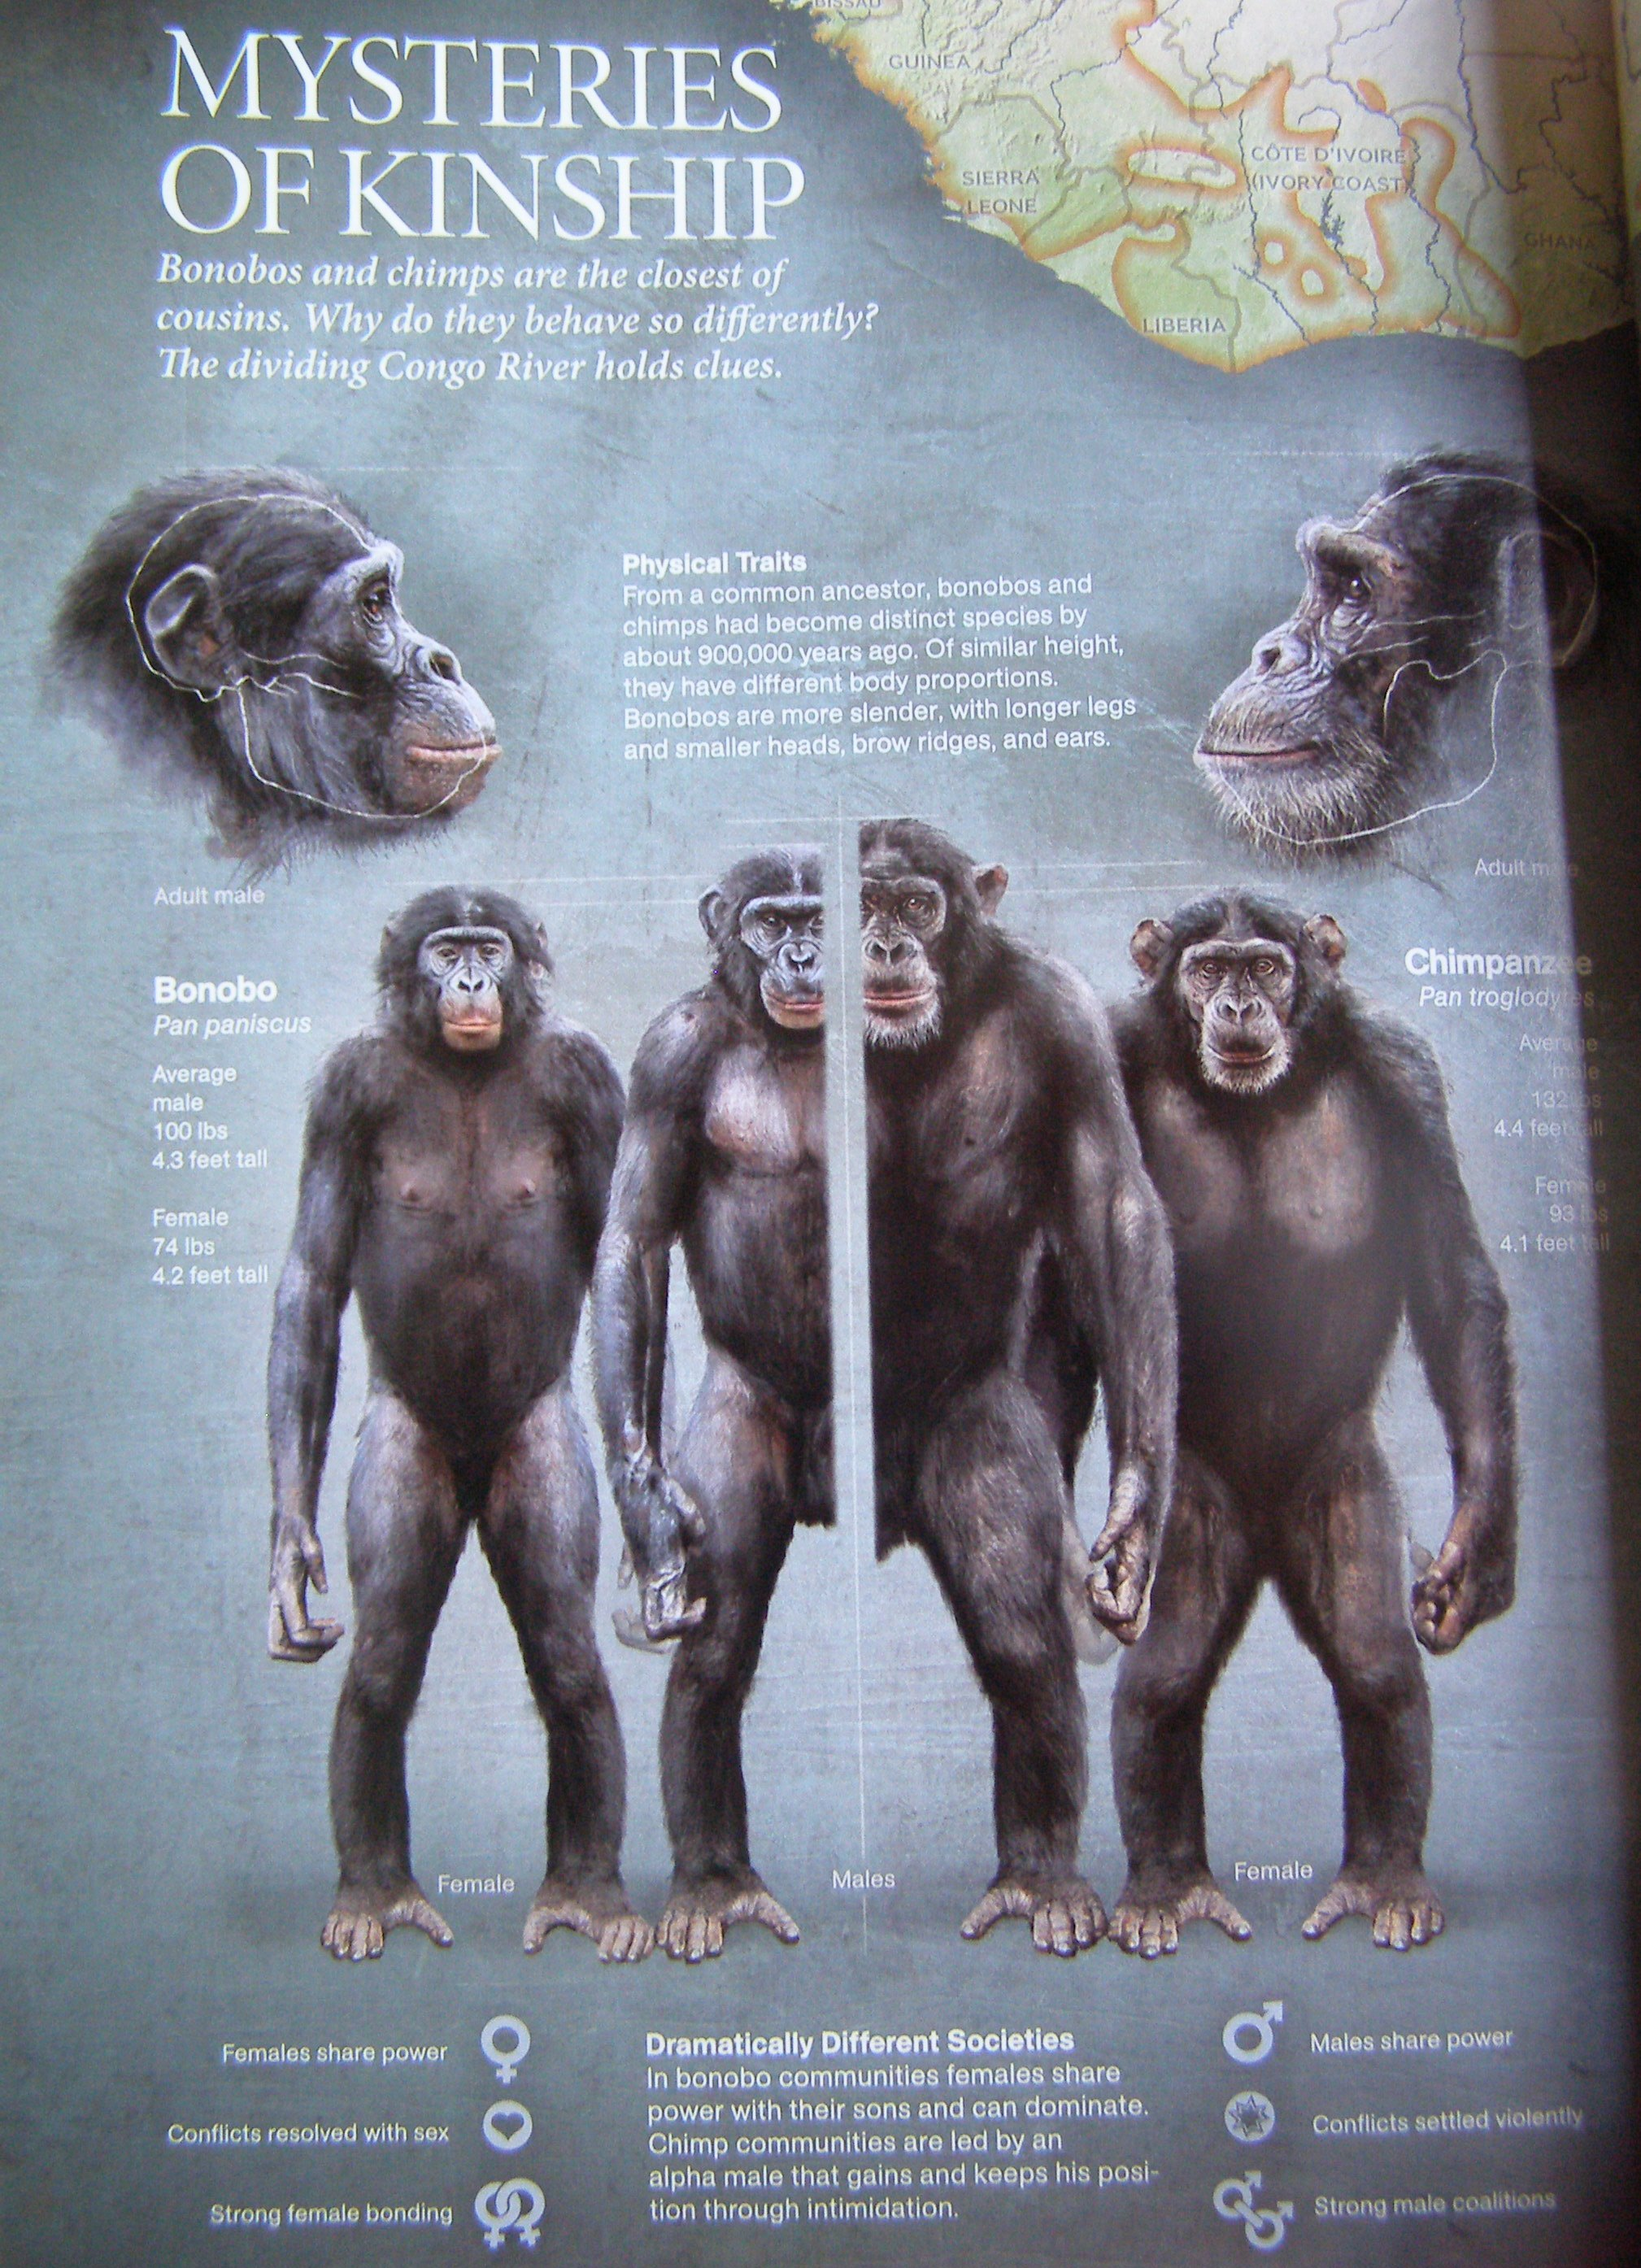 the perspective of sharing a common ancestor between the chimpanzee and the humans